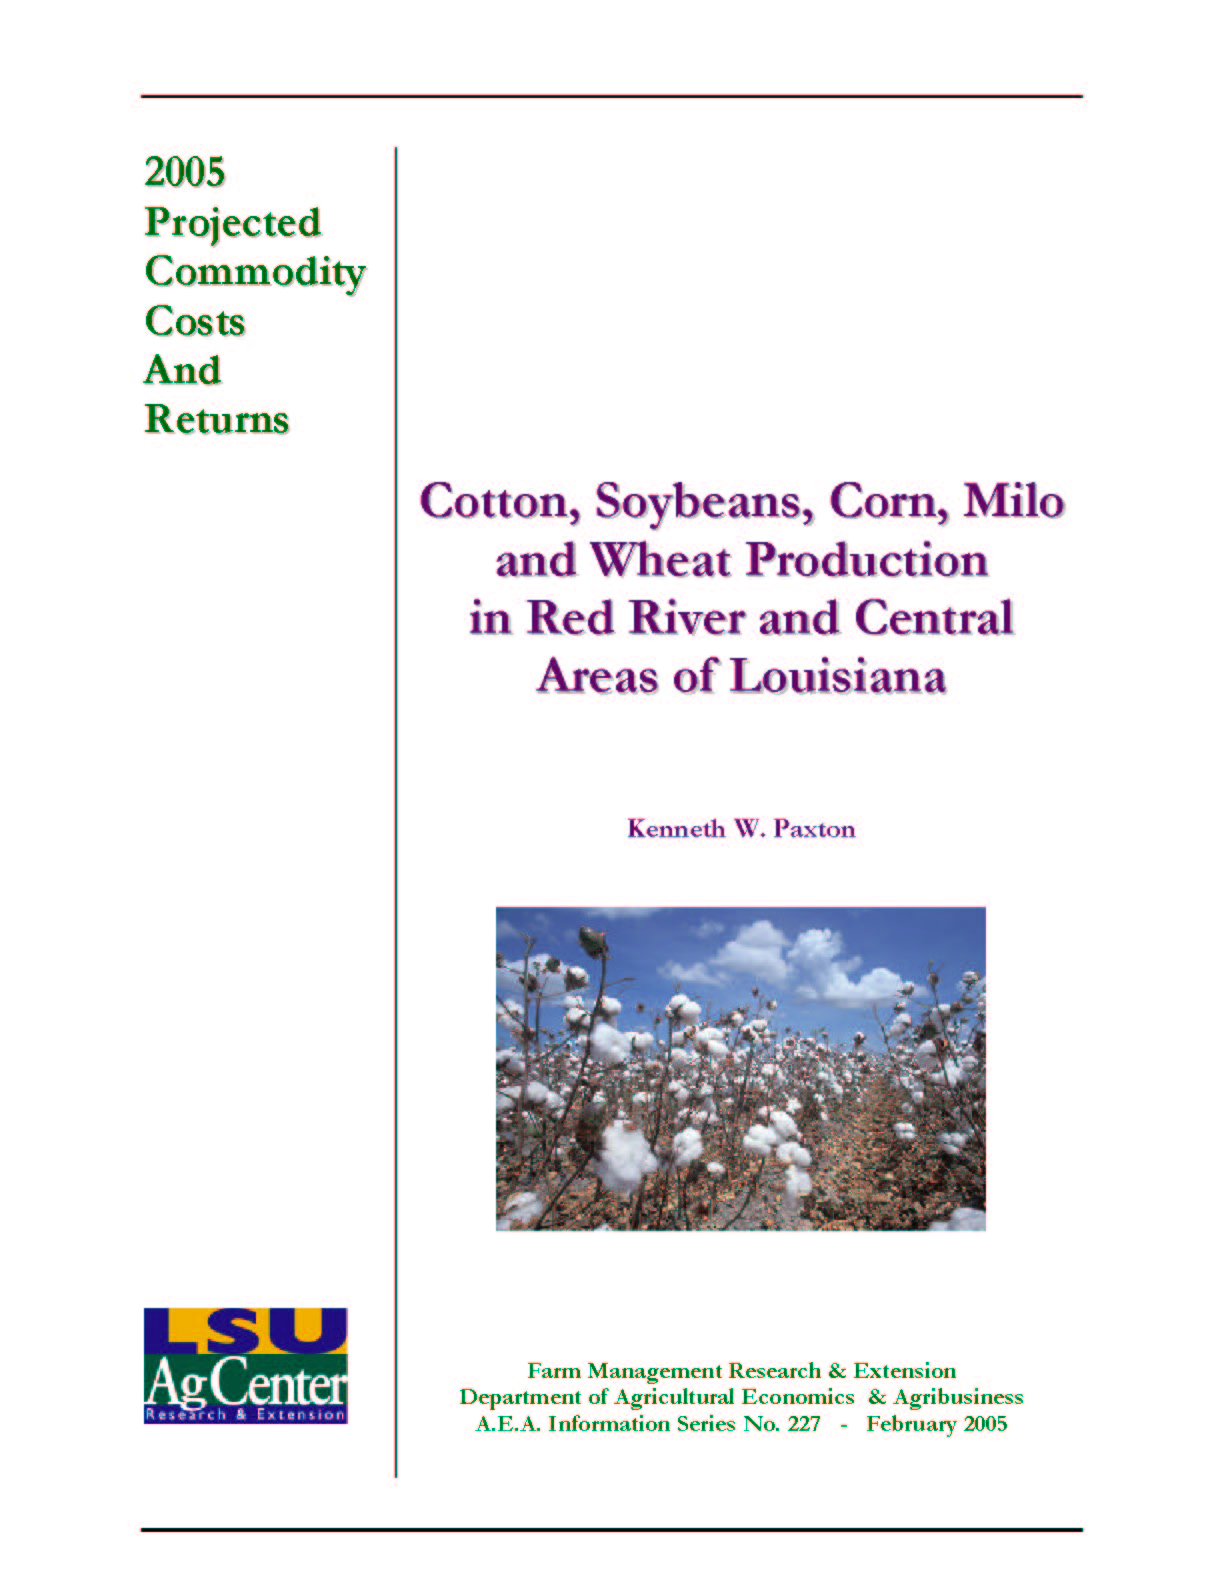 2005 Projected Red River and Central Louisiana Cotton Production Costs